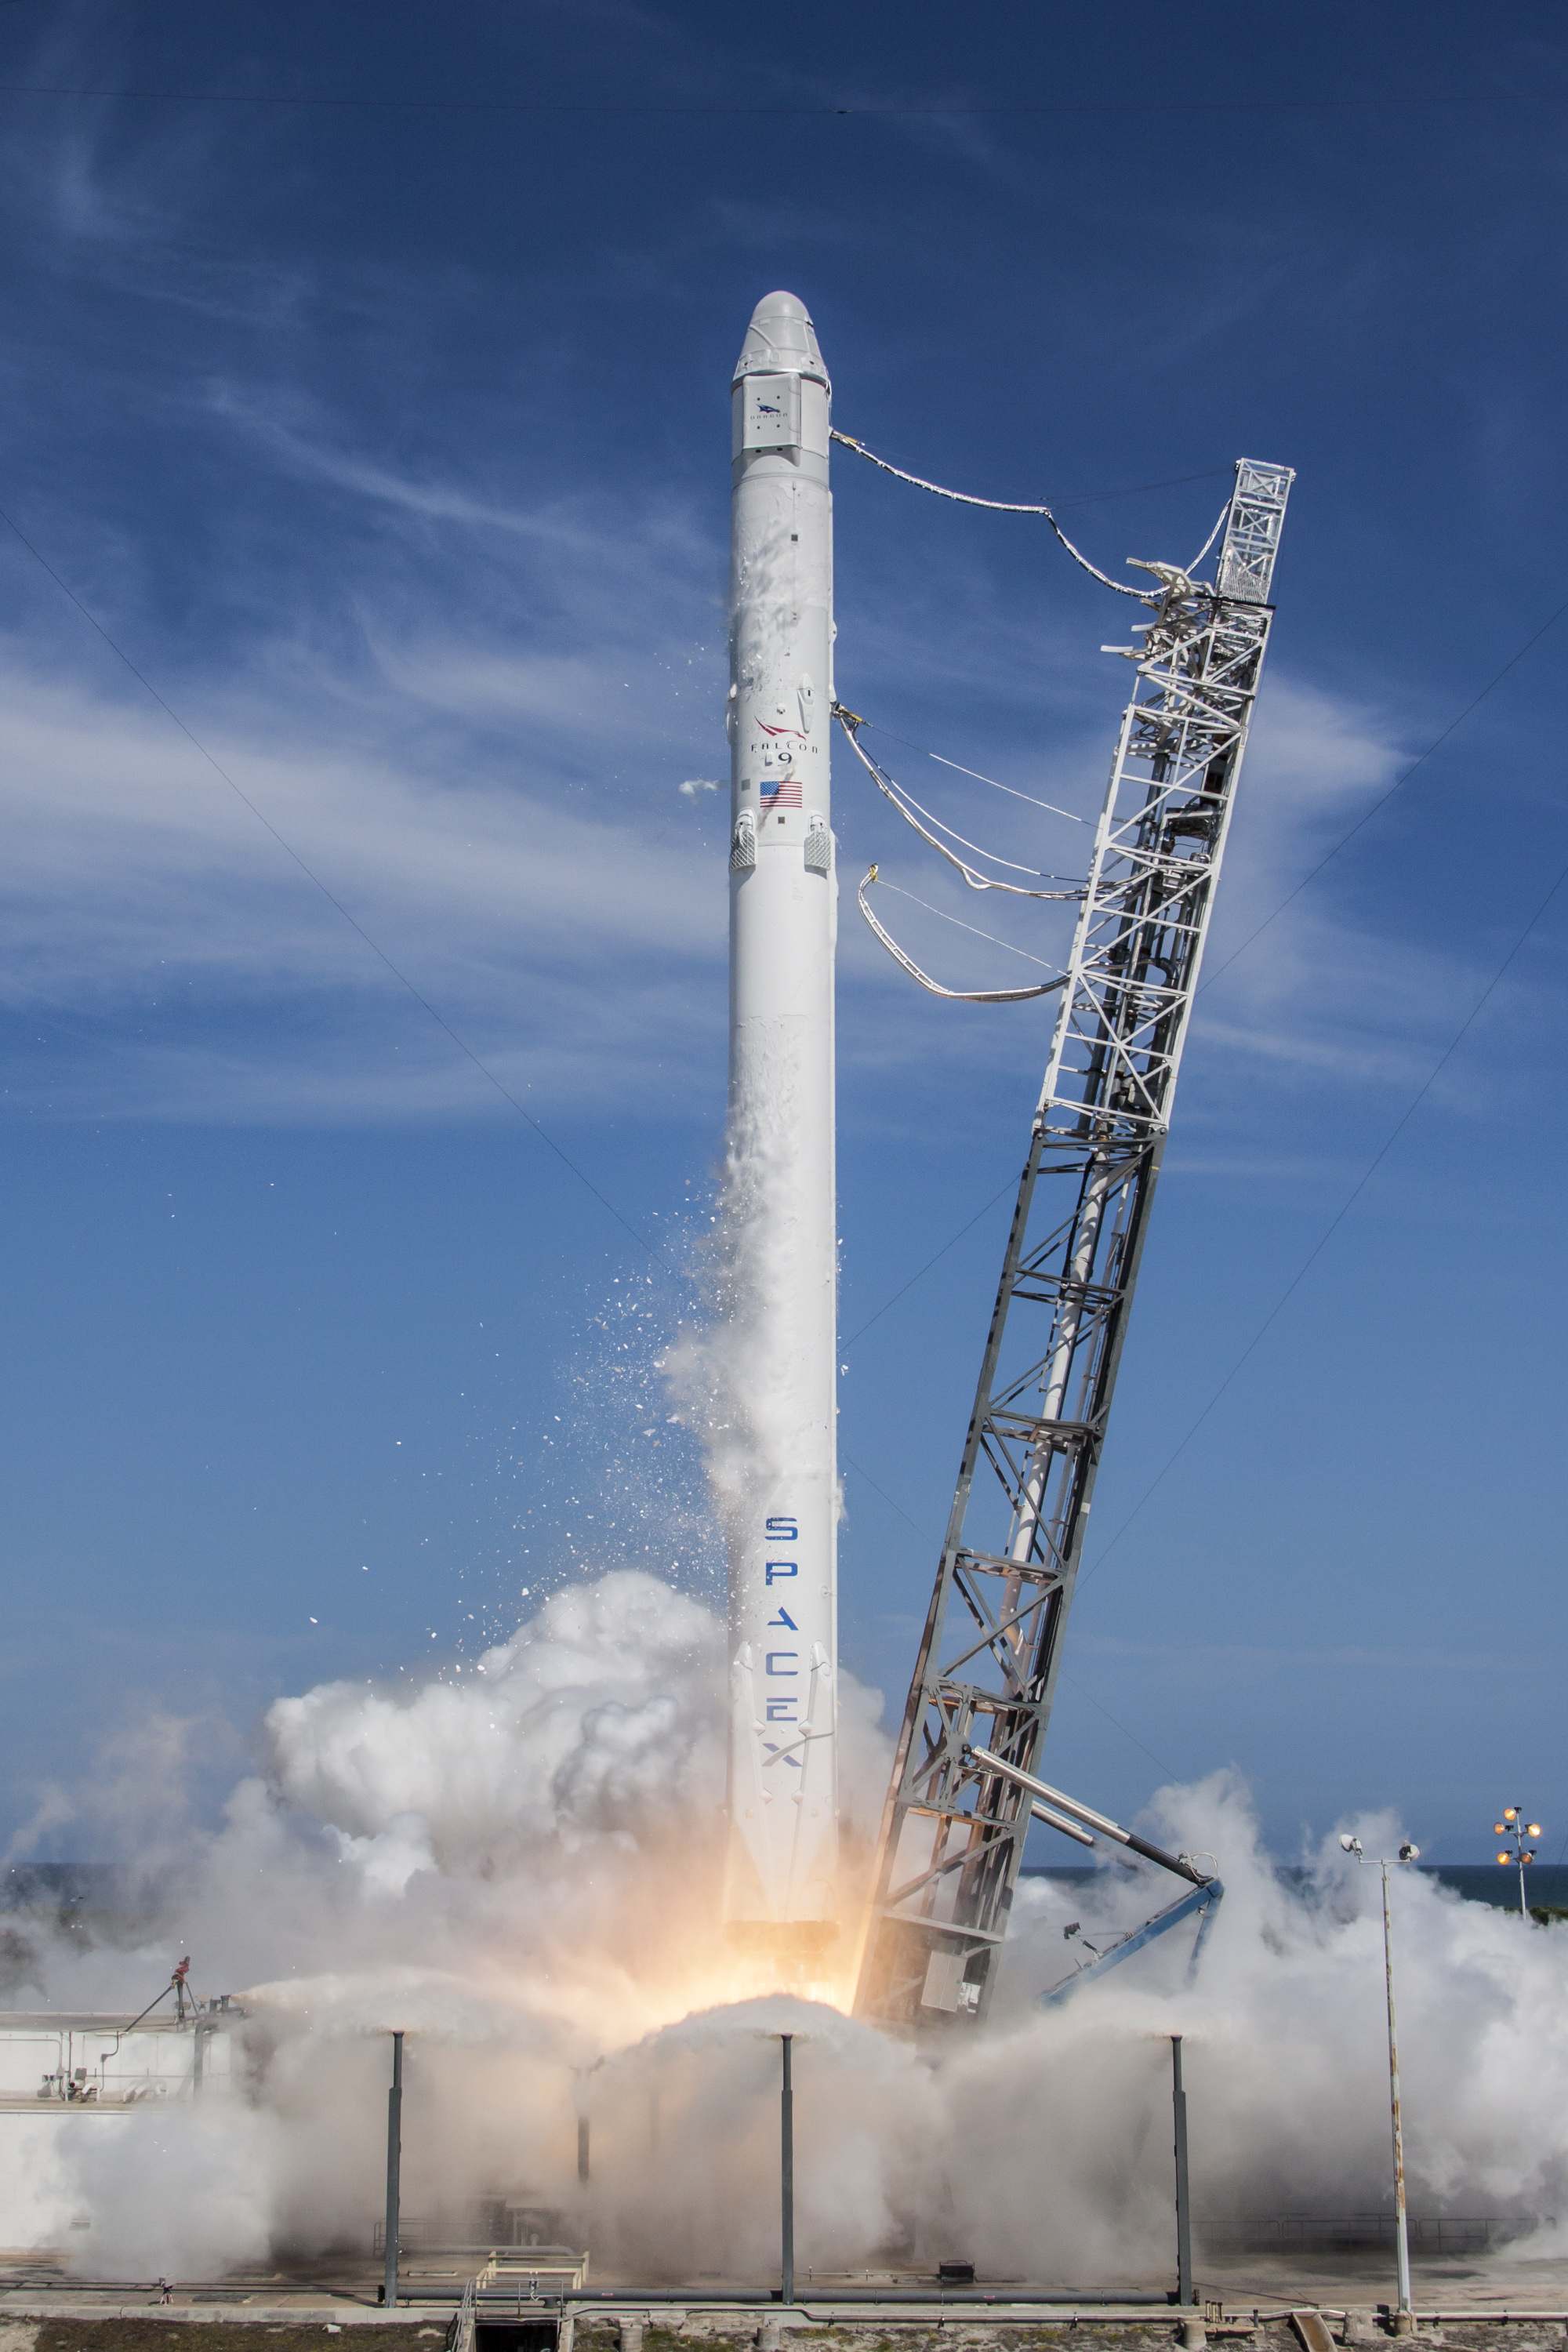 Private space launch of privately developed rocket. Photo courtesy of SpaceX.